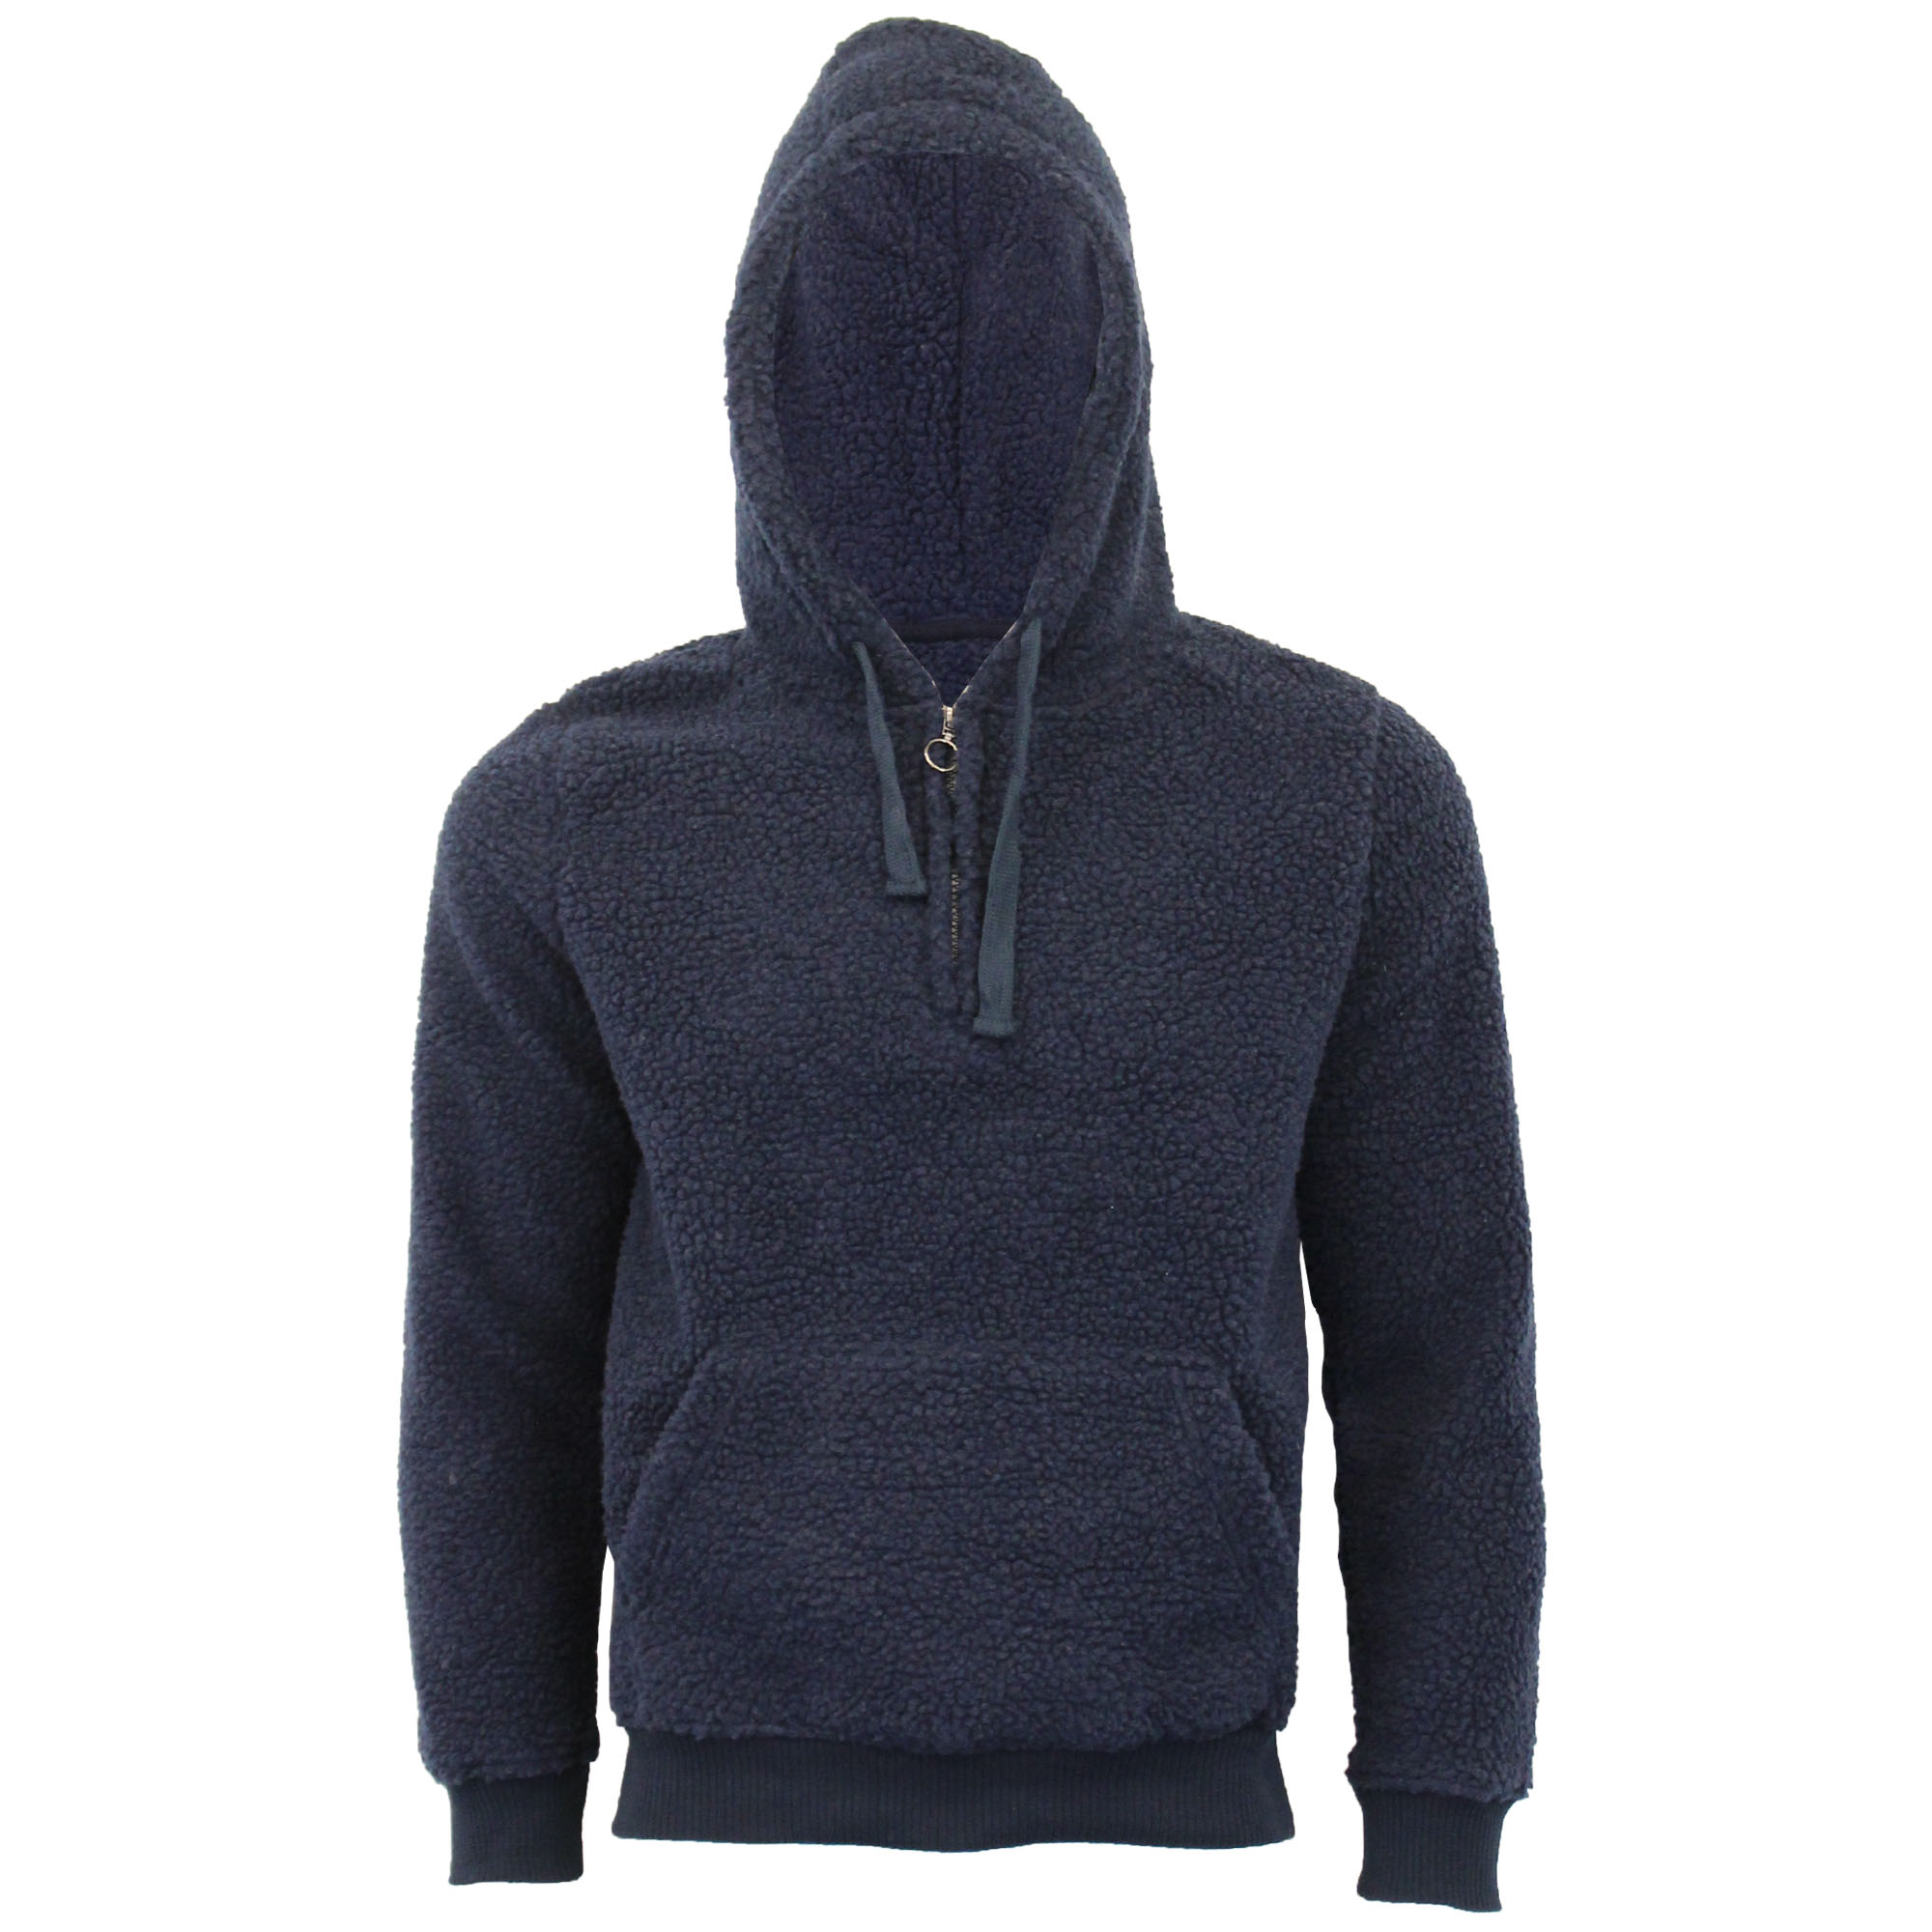 Mens-Borg-Sherpa-Fleece-Sweatshirt-Brave-Soul-DAIM-Over-The-Head-Hooded-Top-Warm thumbnail 10